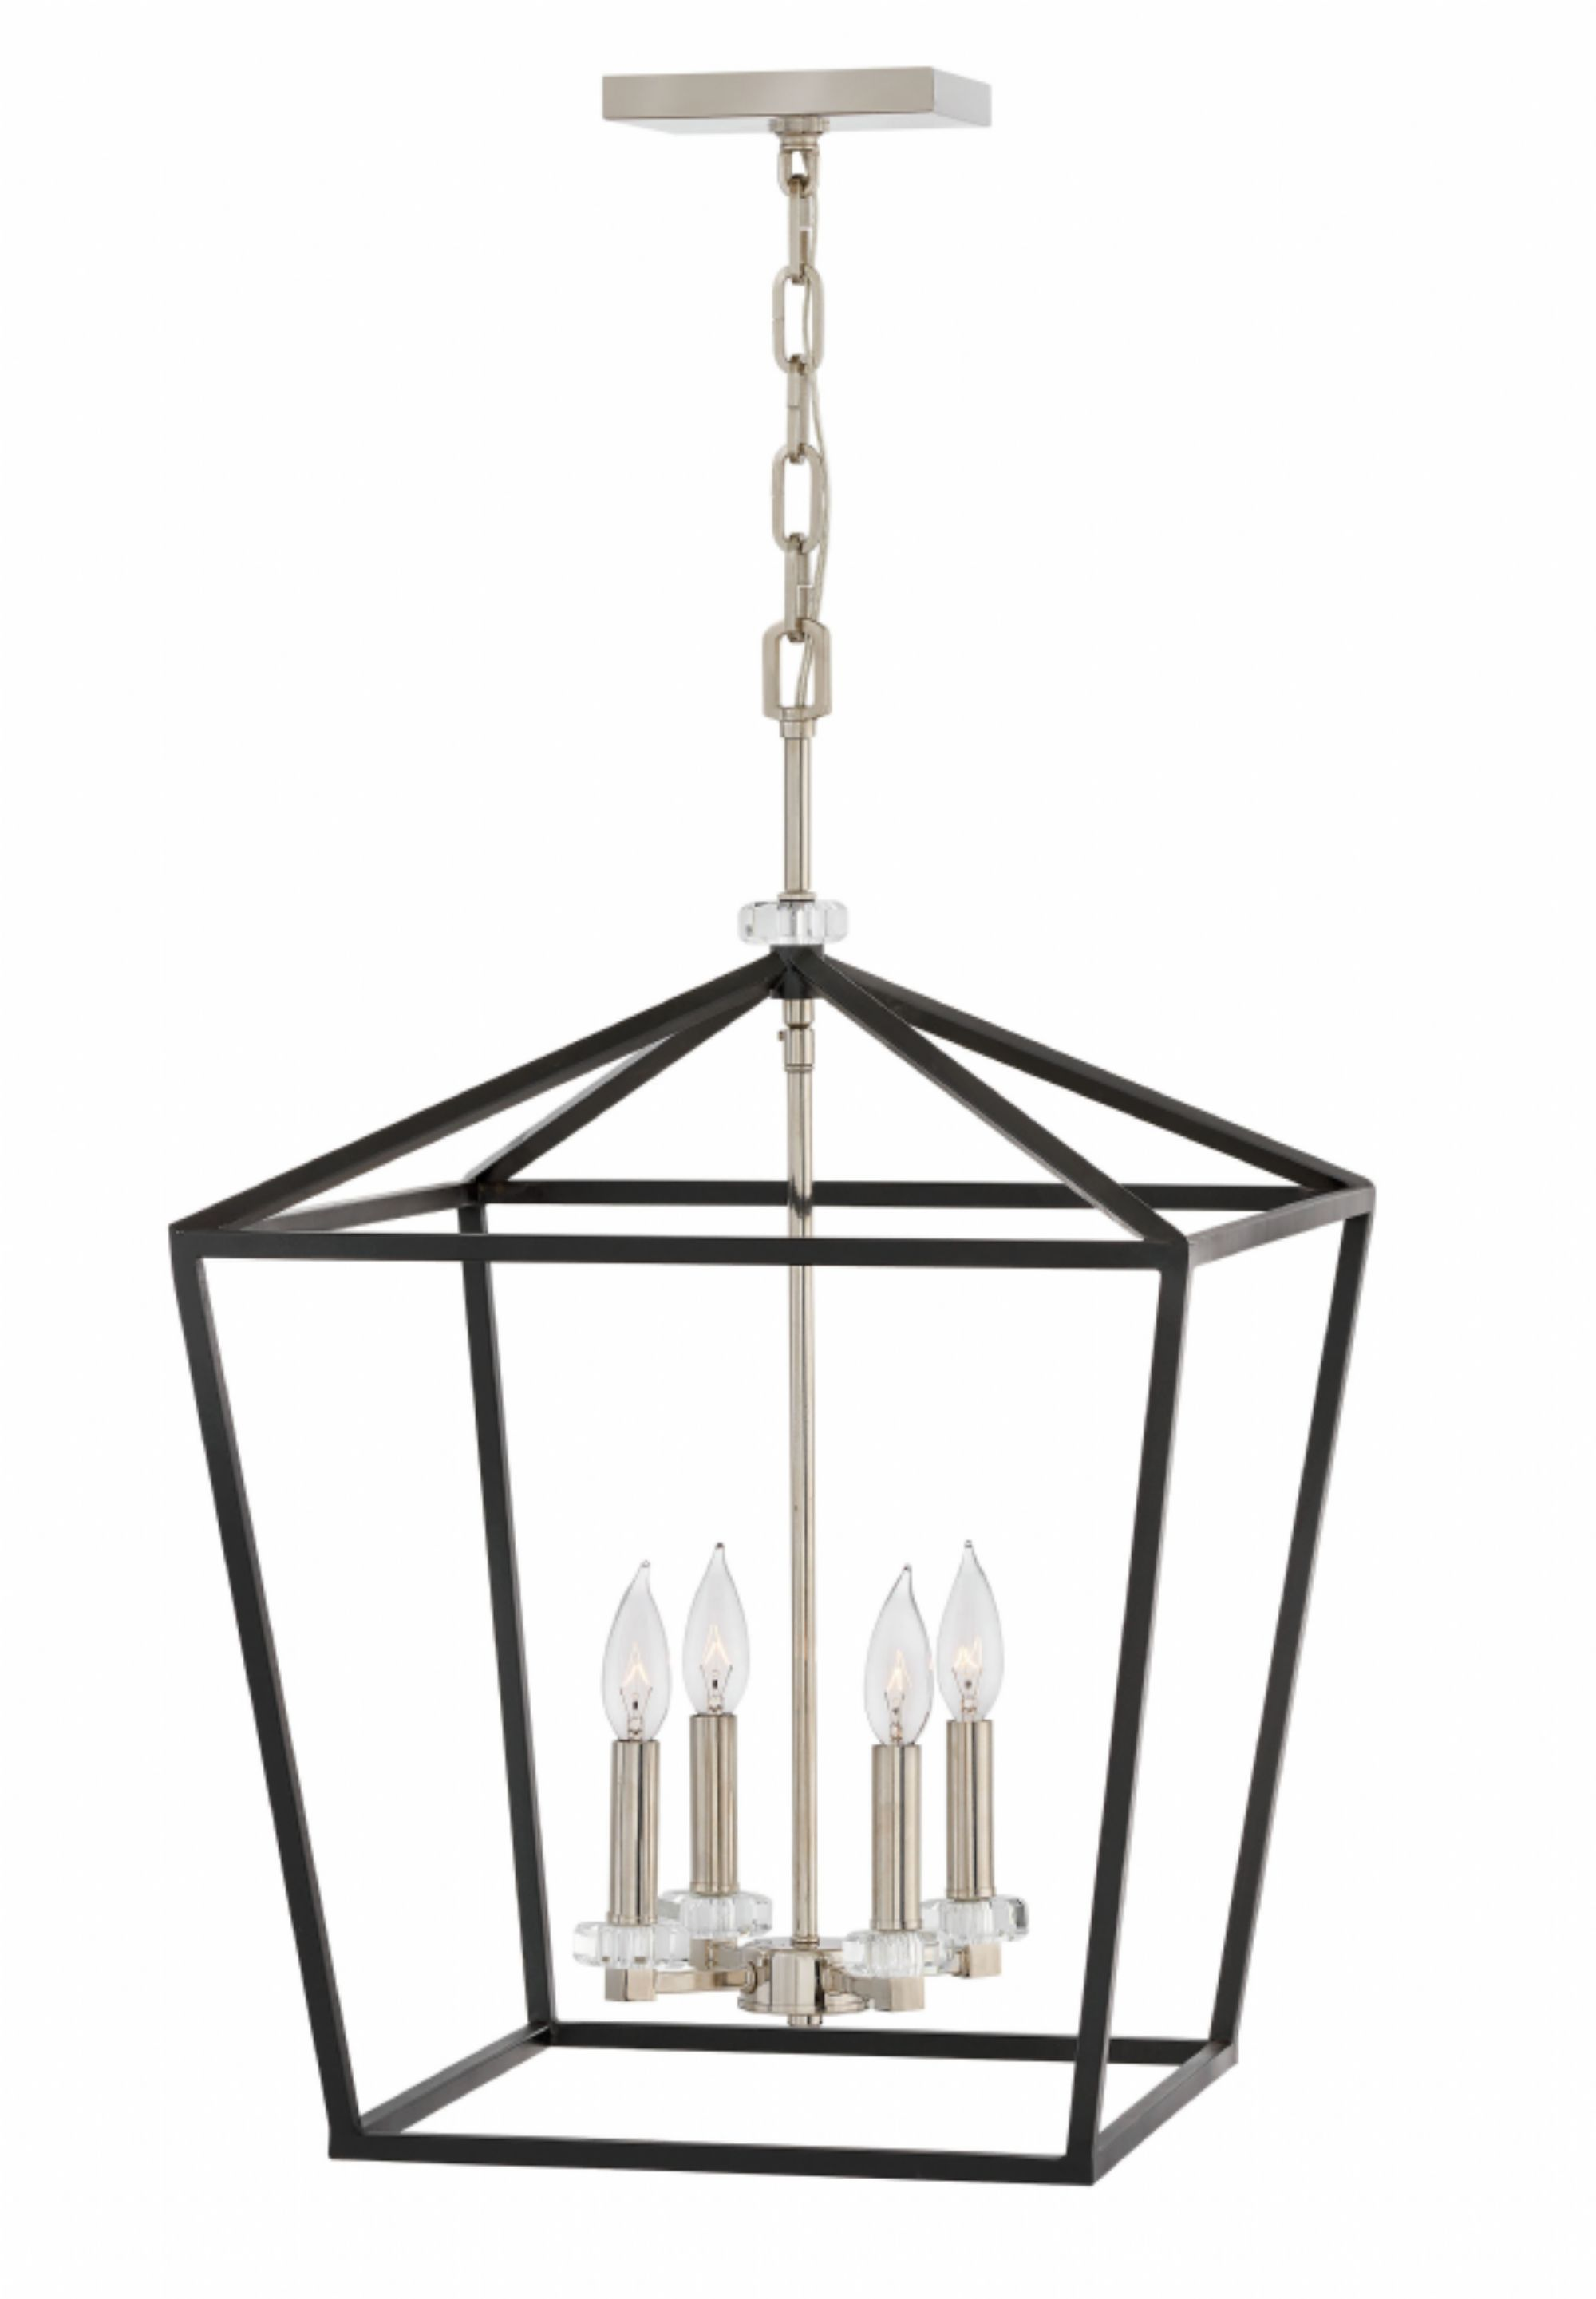 Hinkley Lighting Carries Many Black Stinson Interior Hanging Light Fixtures That Can Be Used To Enhance